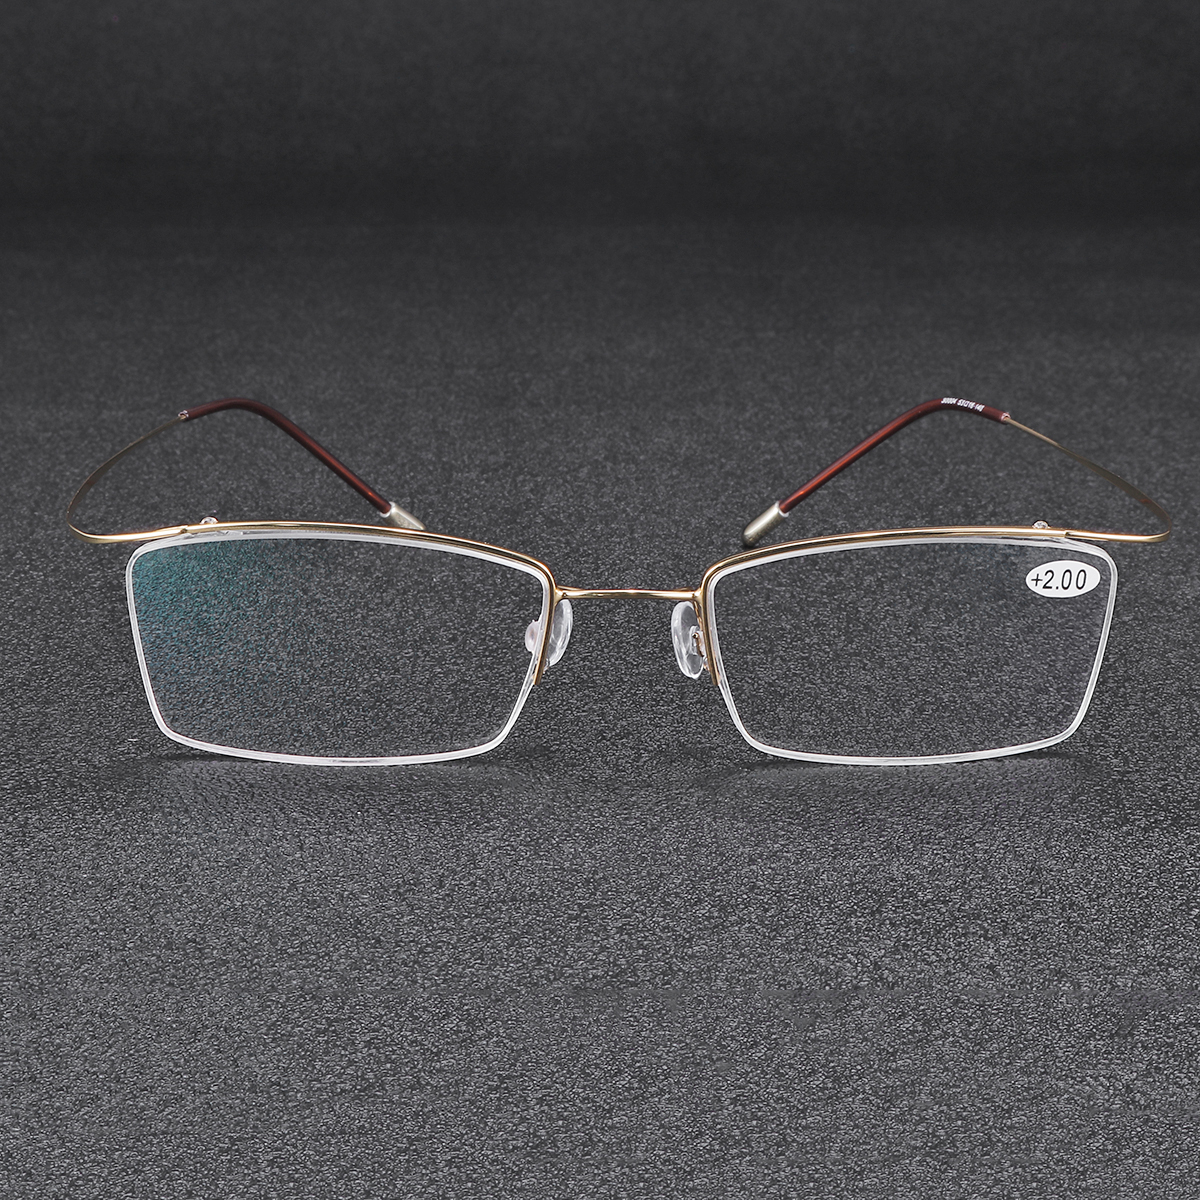 BRAODISON Presbyopic Reading Glasses HD Coated Resin Lens